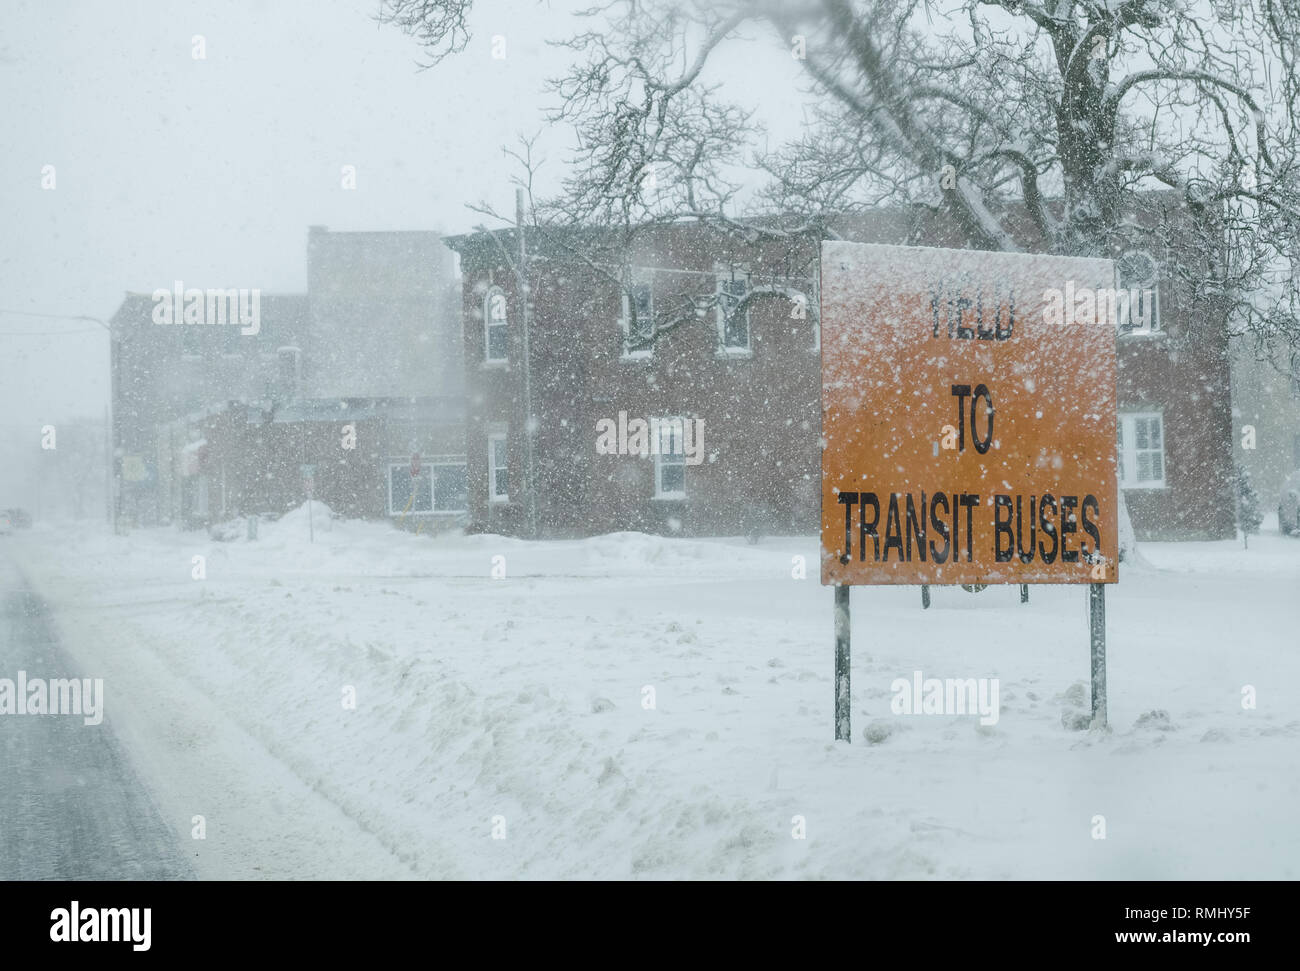 On Downie Street in Stratford, Ontario, we see a traffic sign that asks us to yield to transit buses that exit the terminal. Storm squall in winter. - Stock Image